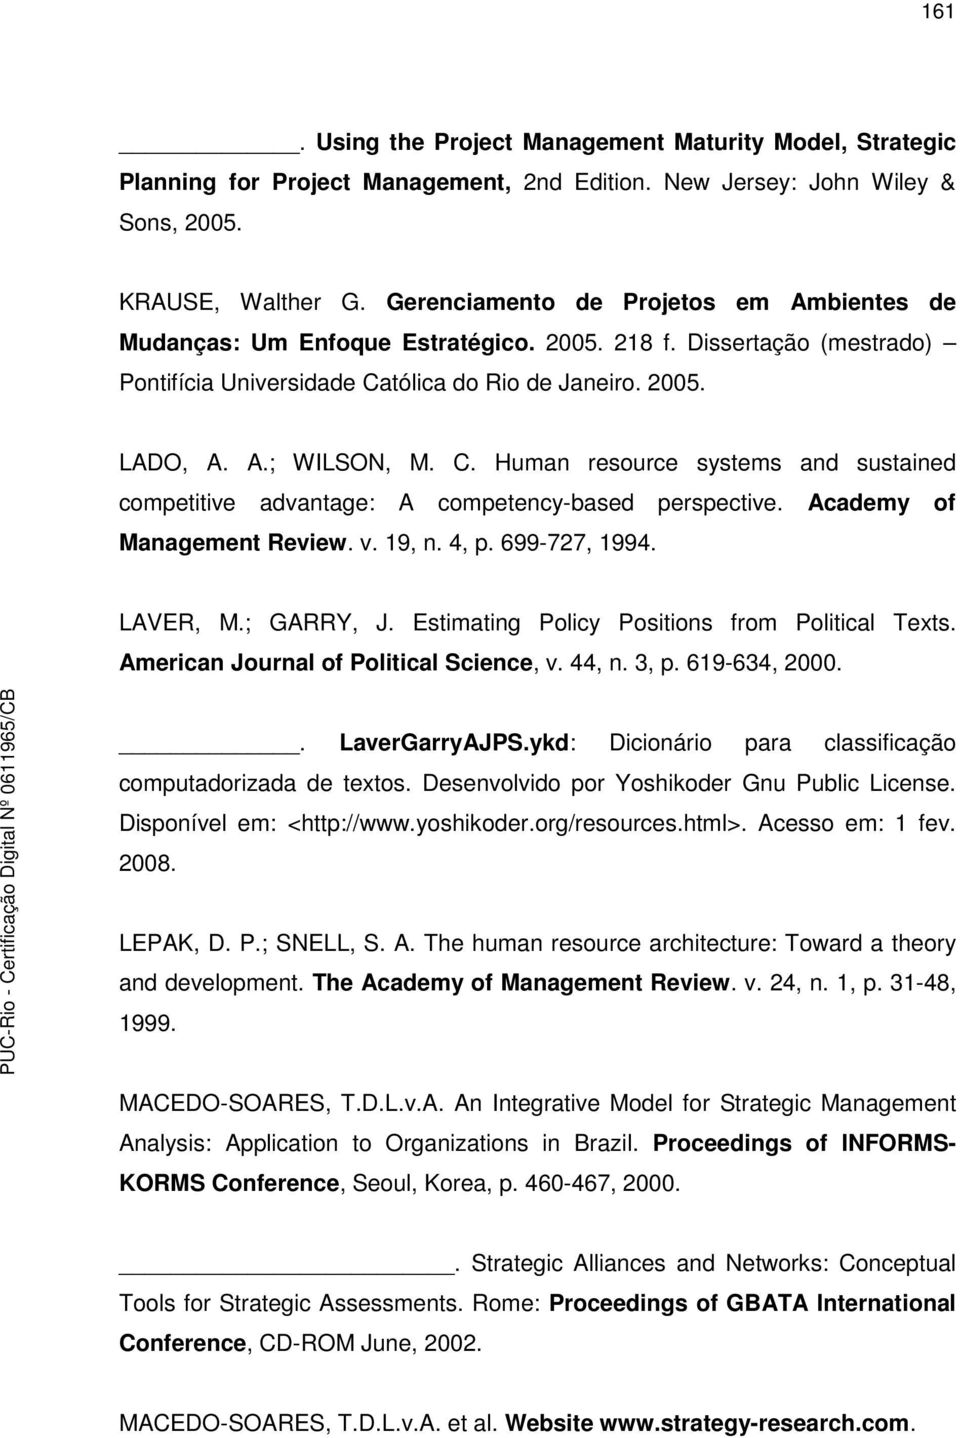 tólica do Rio de Janeiro. 2005. LADO, A. A.; WILSON, M. C. Human resource systems and sustained competitive advantage: A competency-based perspective. Academy of Management Review. v. 19, n. 4, p.